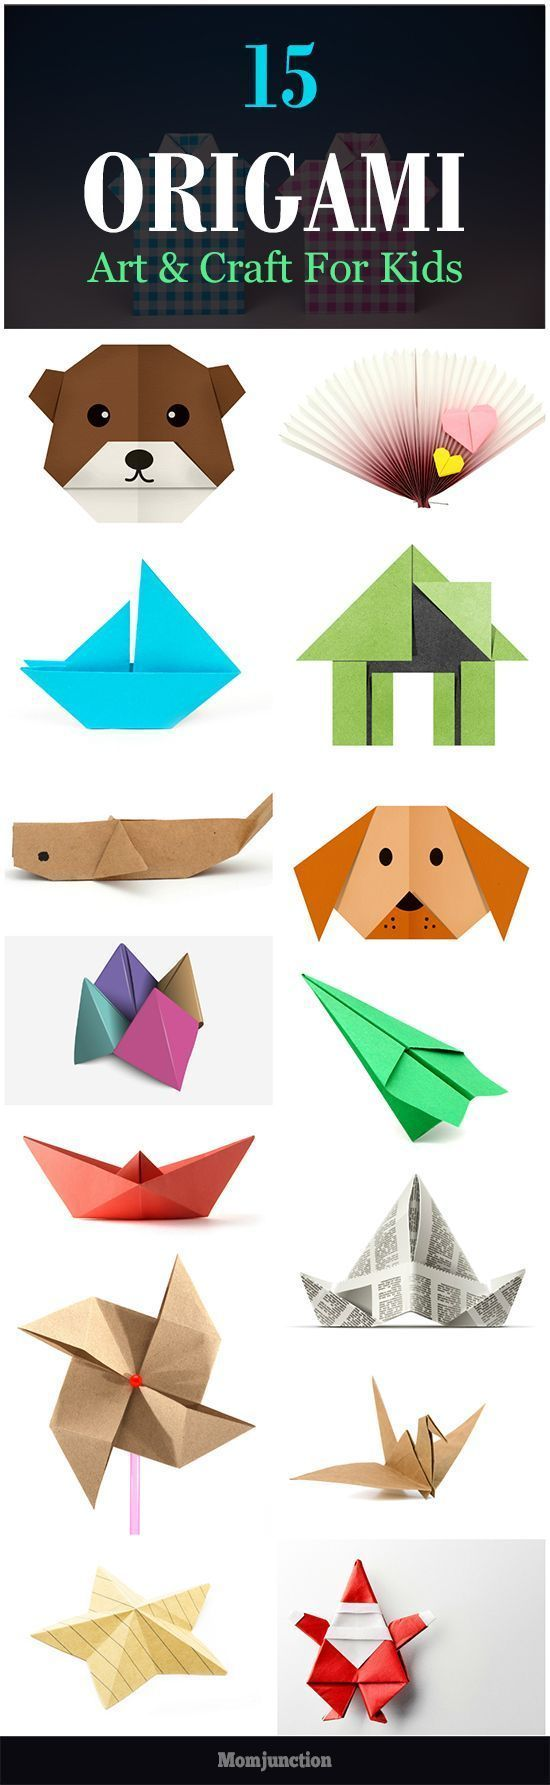 Most Popular Teaching Resources: Top 15 Paper Folding Or Origami Crafts For Kids